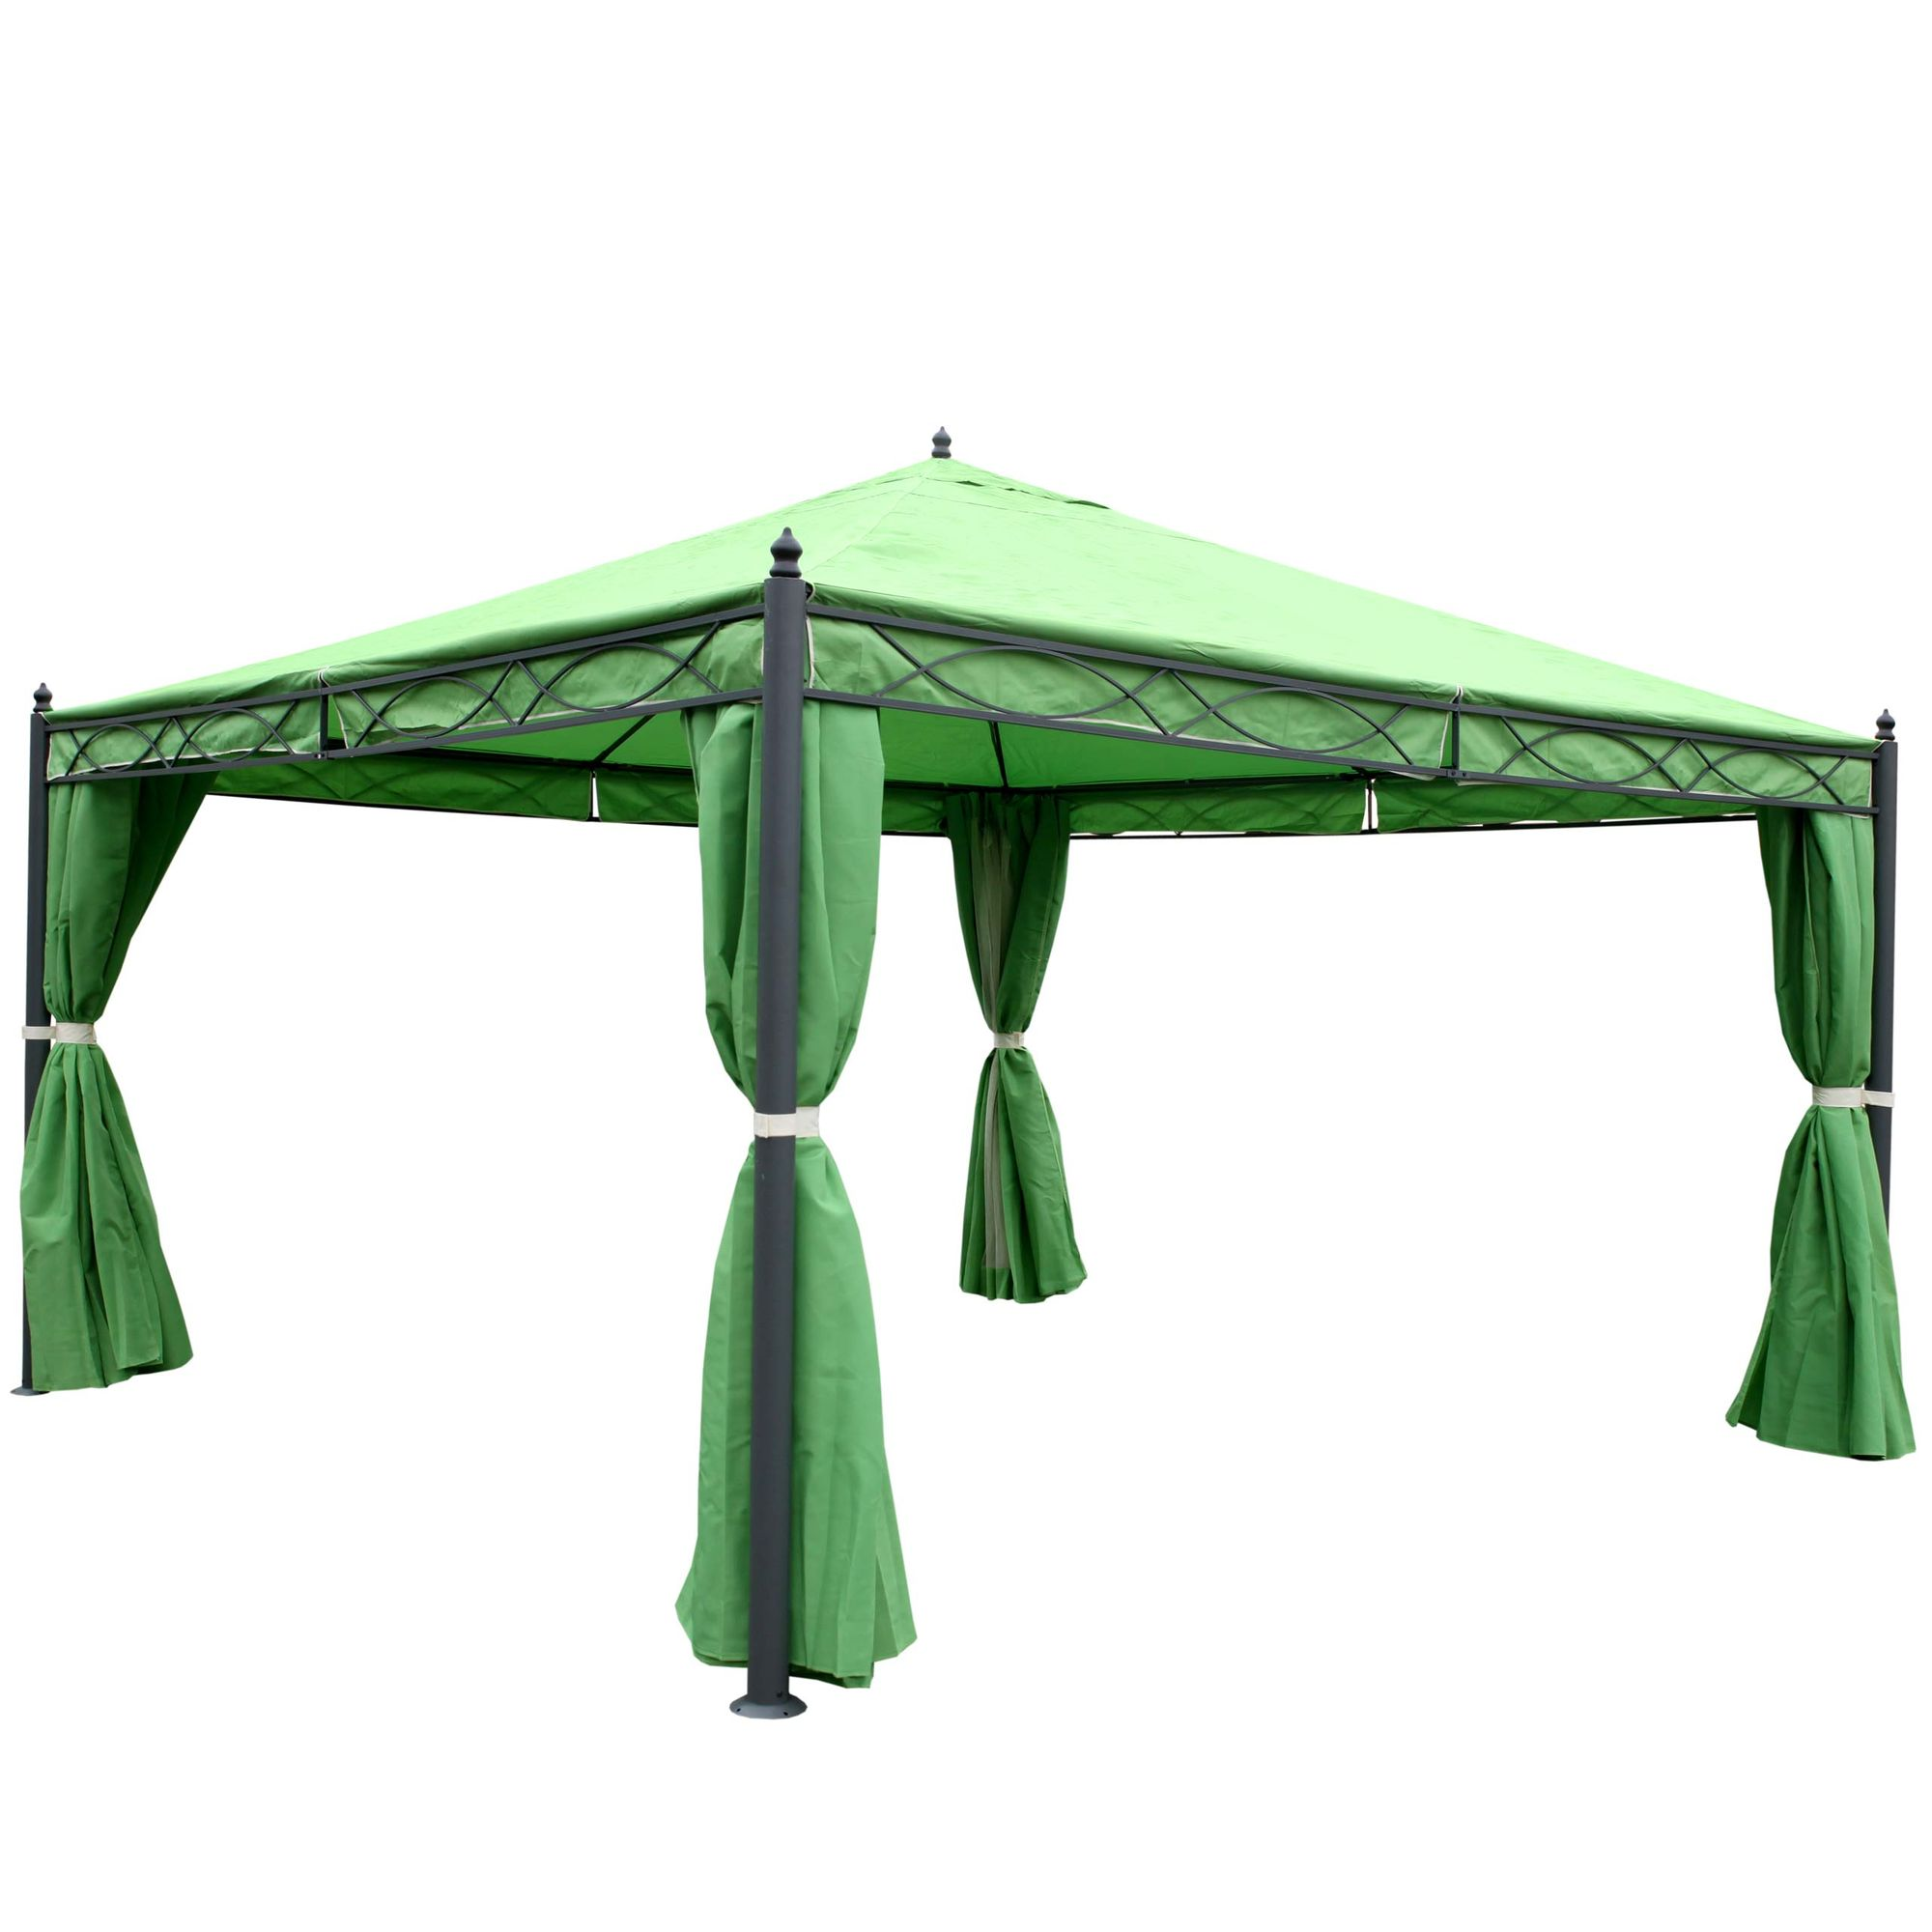 pergola garten pavillon stabiles 7cm gestell mit seitenwand moskitonetz gr n 4x4m garten. Black Bedroom Furniture Sets. Home Design Ideas